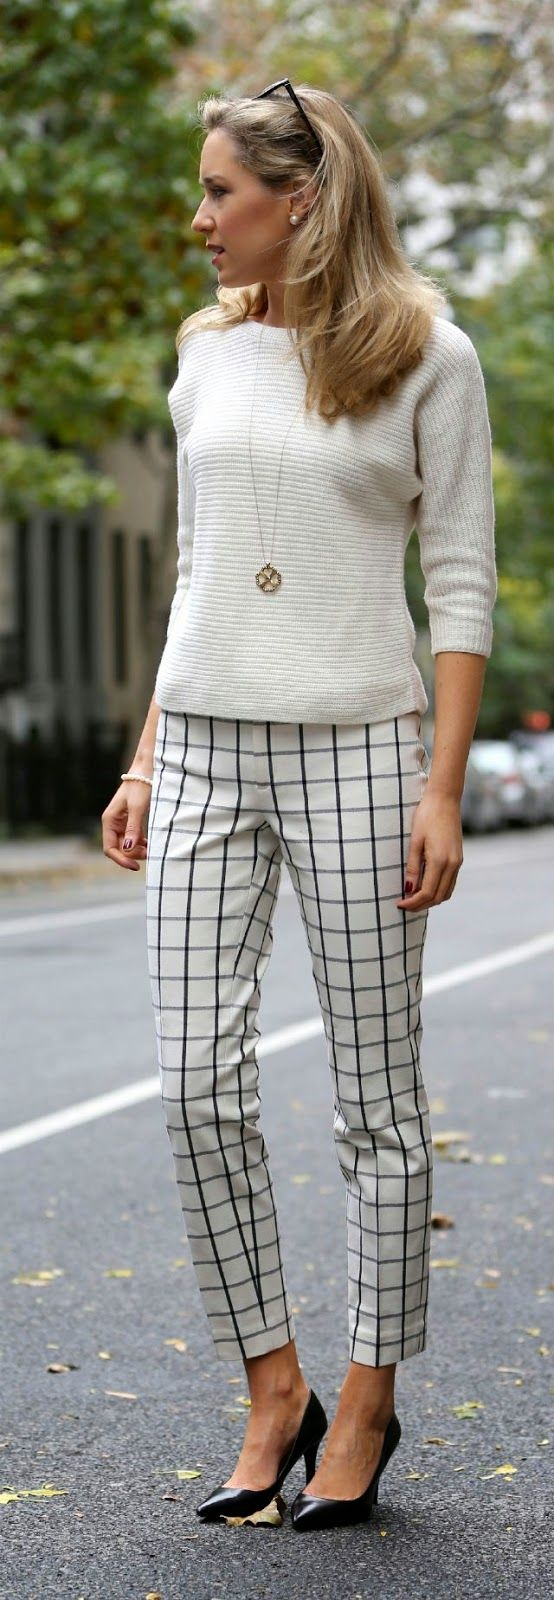 Street Style With White Sweater And Black Heels - ladies fashion style